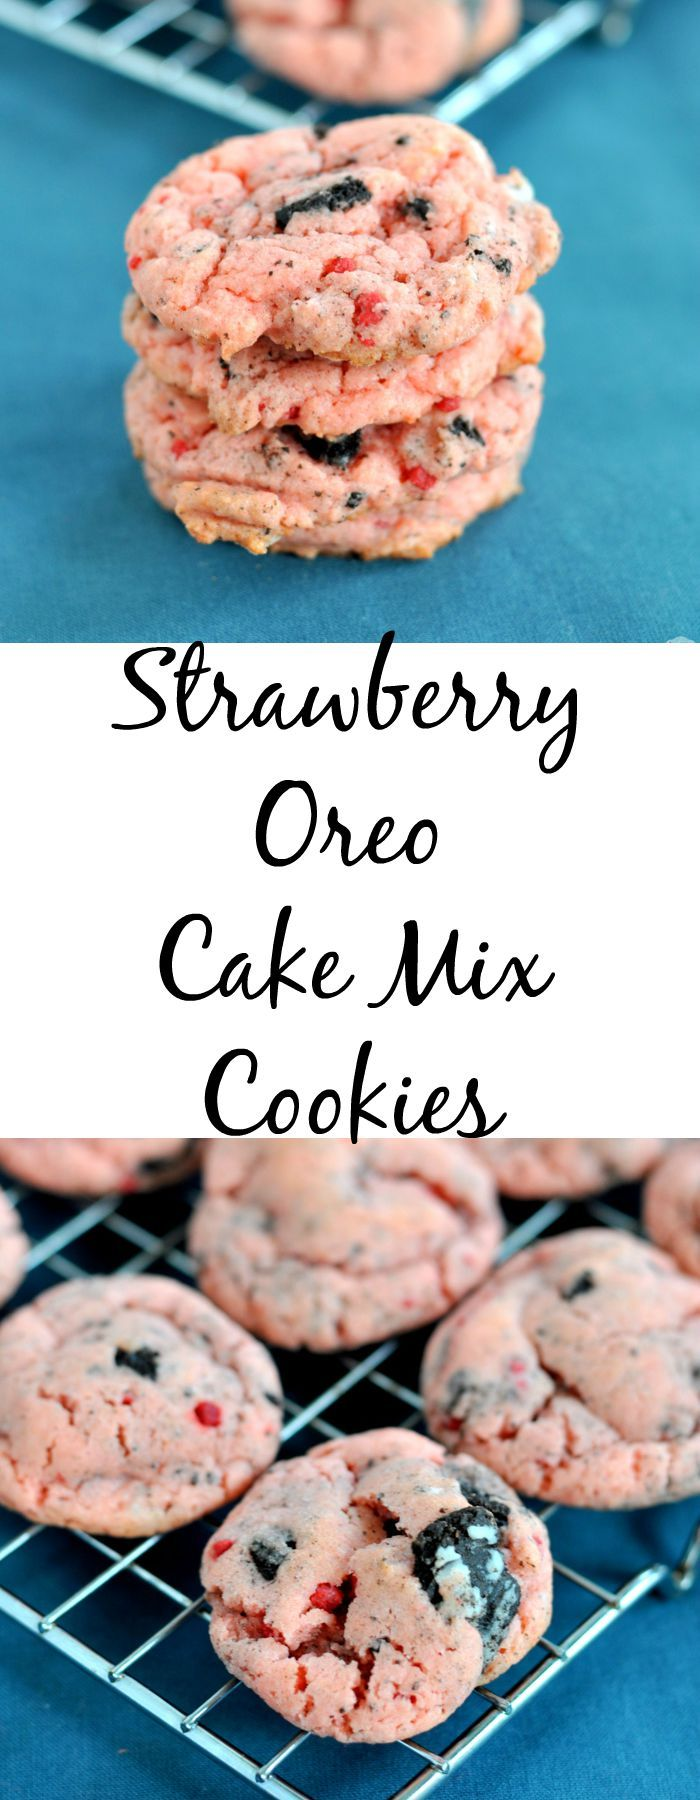 4 ingredients and 15 minutes is all you need to make strawberry Oreo cake mix cookies!